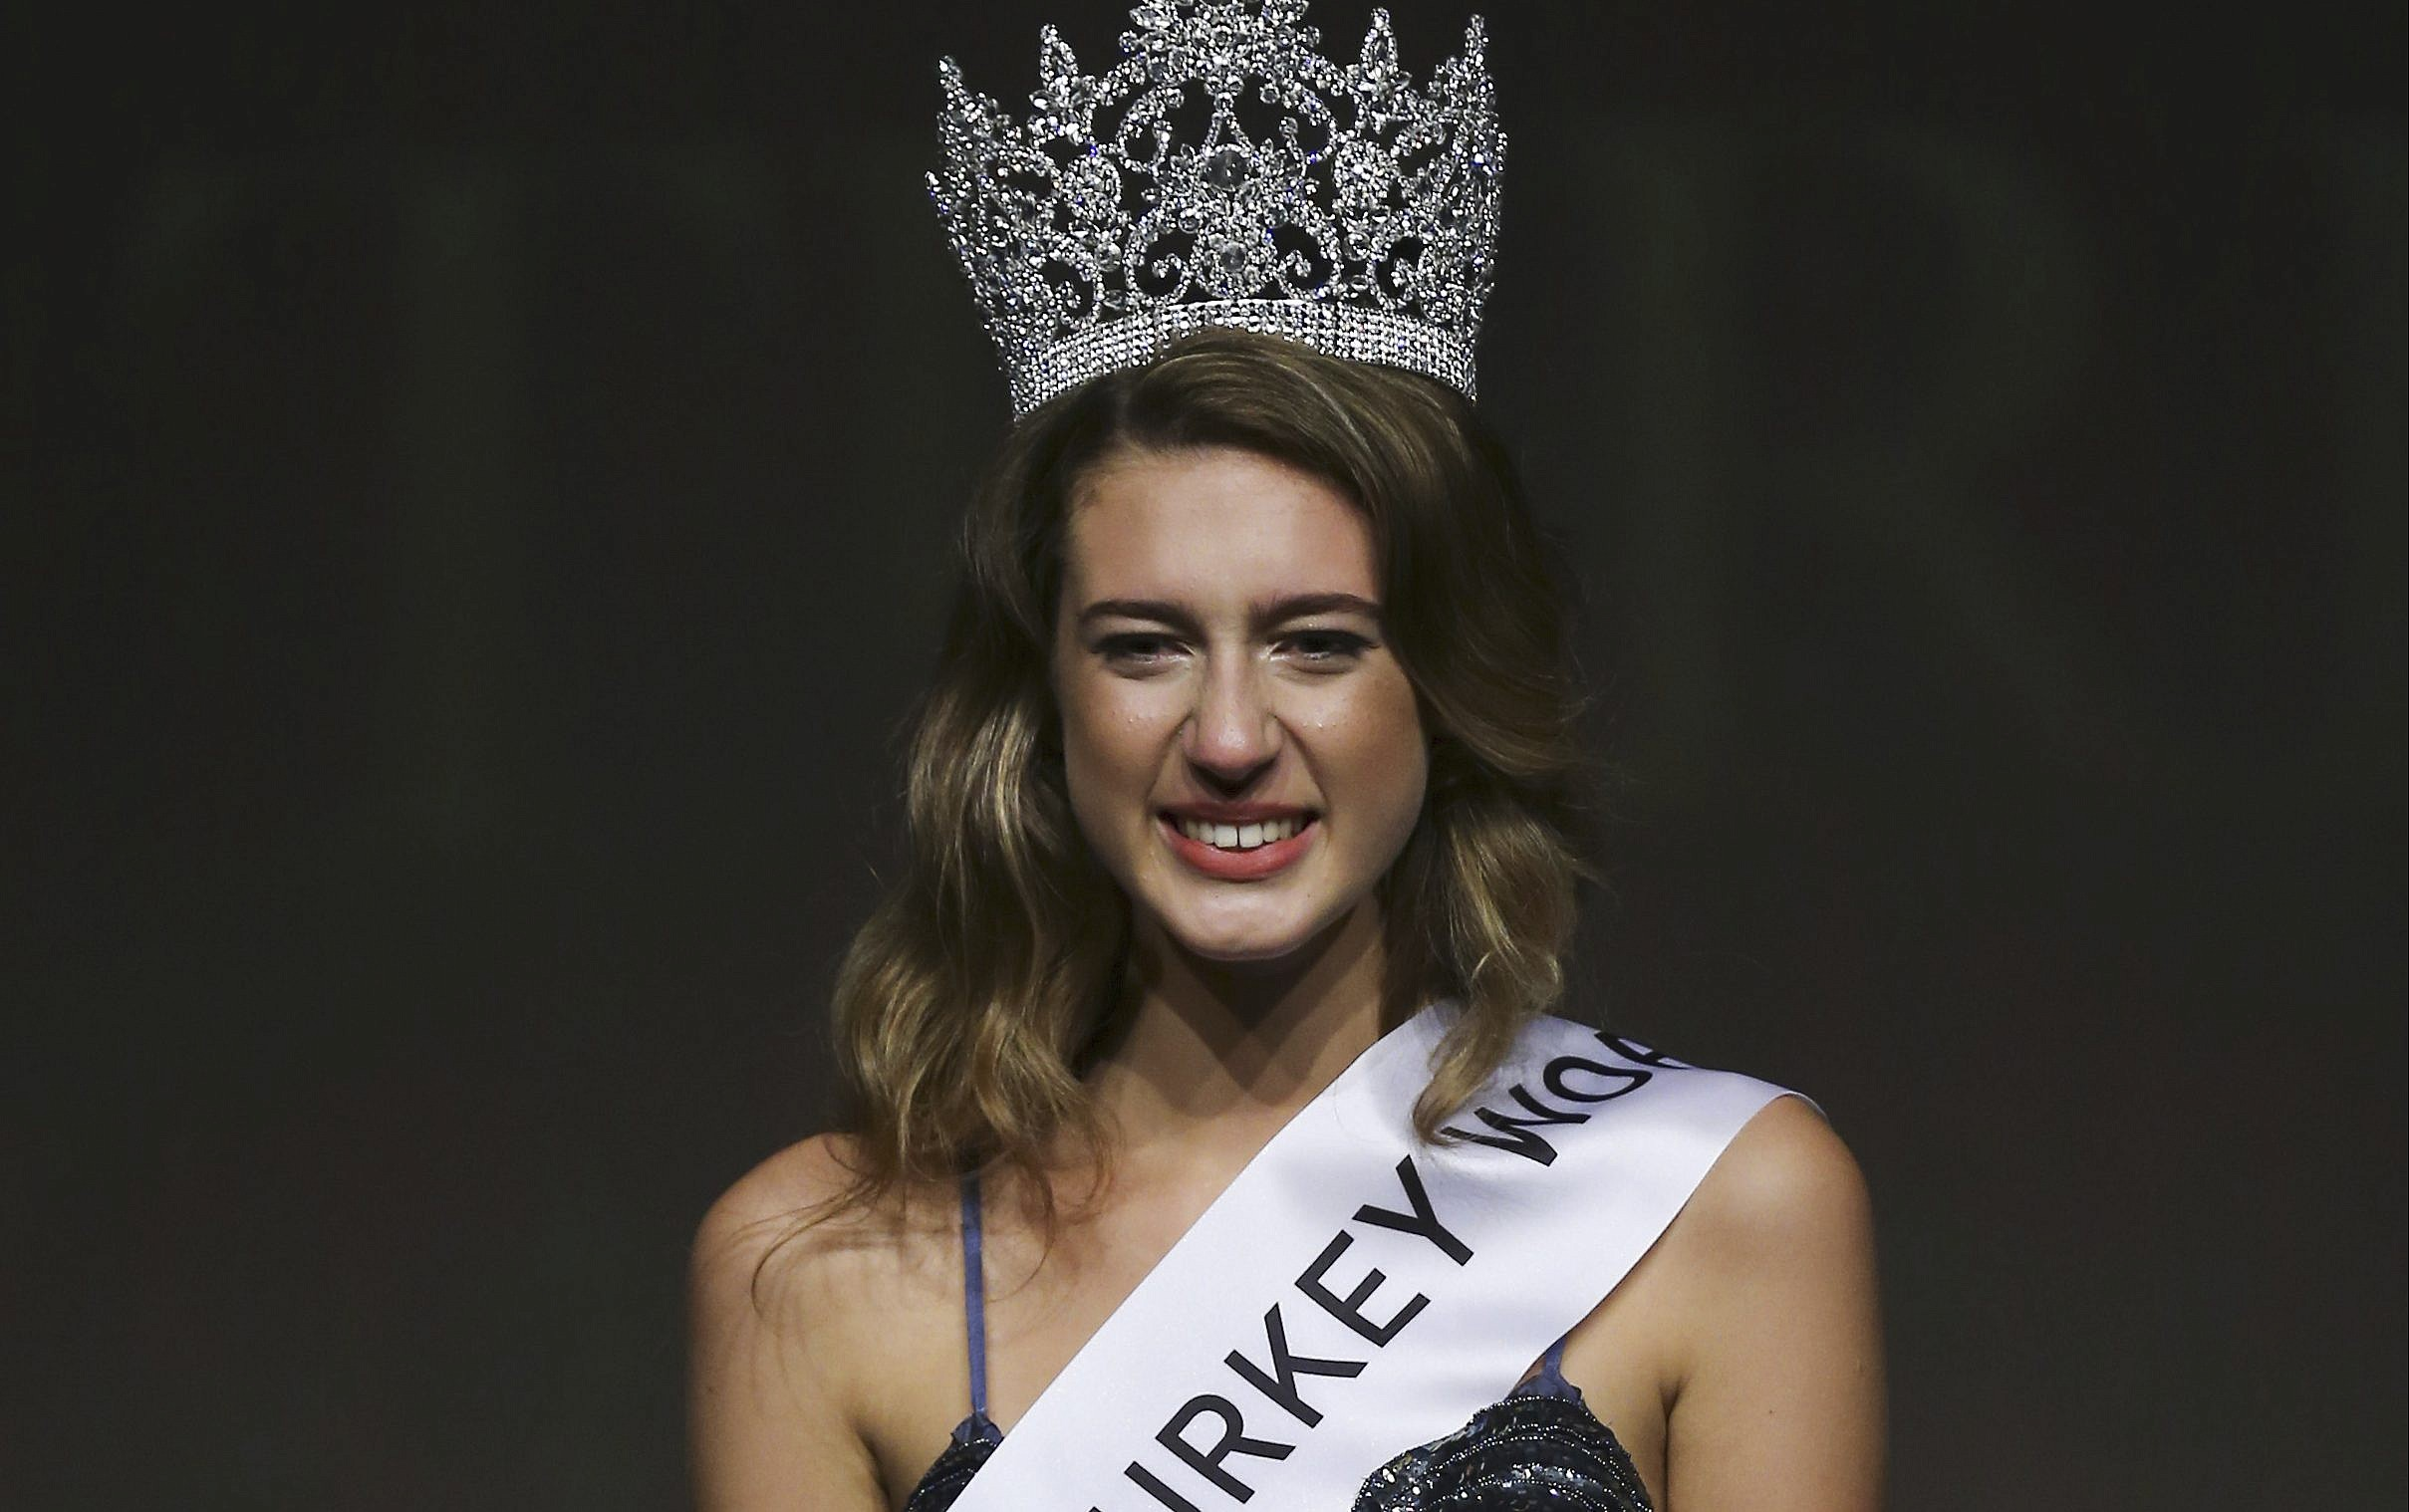 Prosecutors seek prison term for ex-Miss Turkey